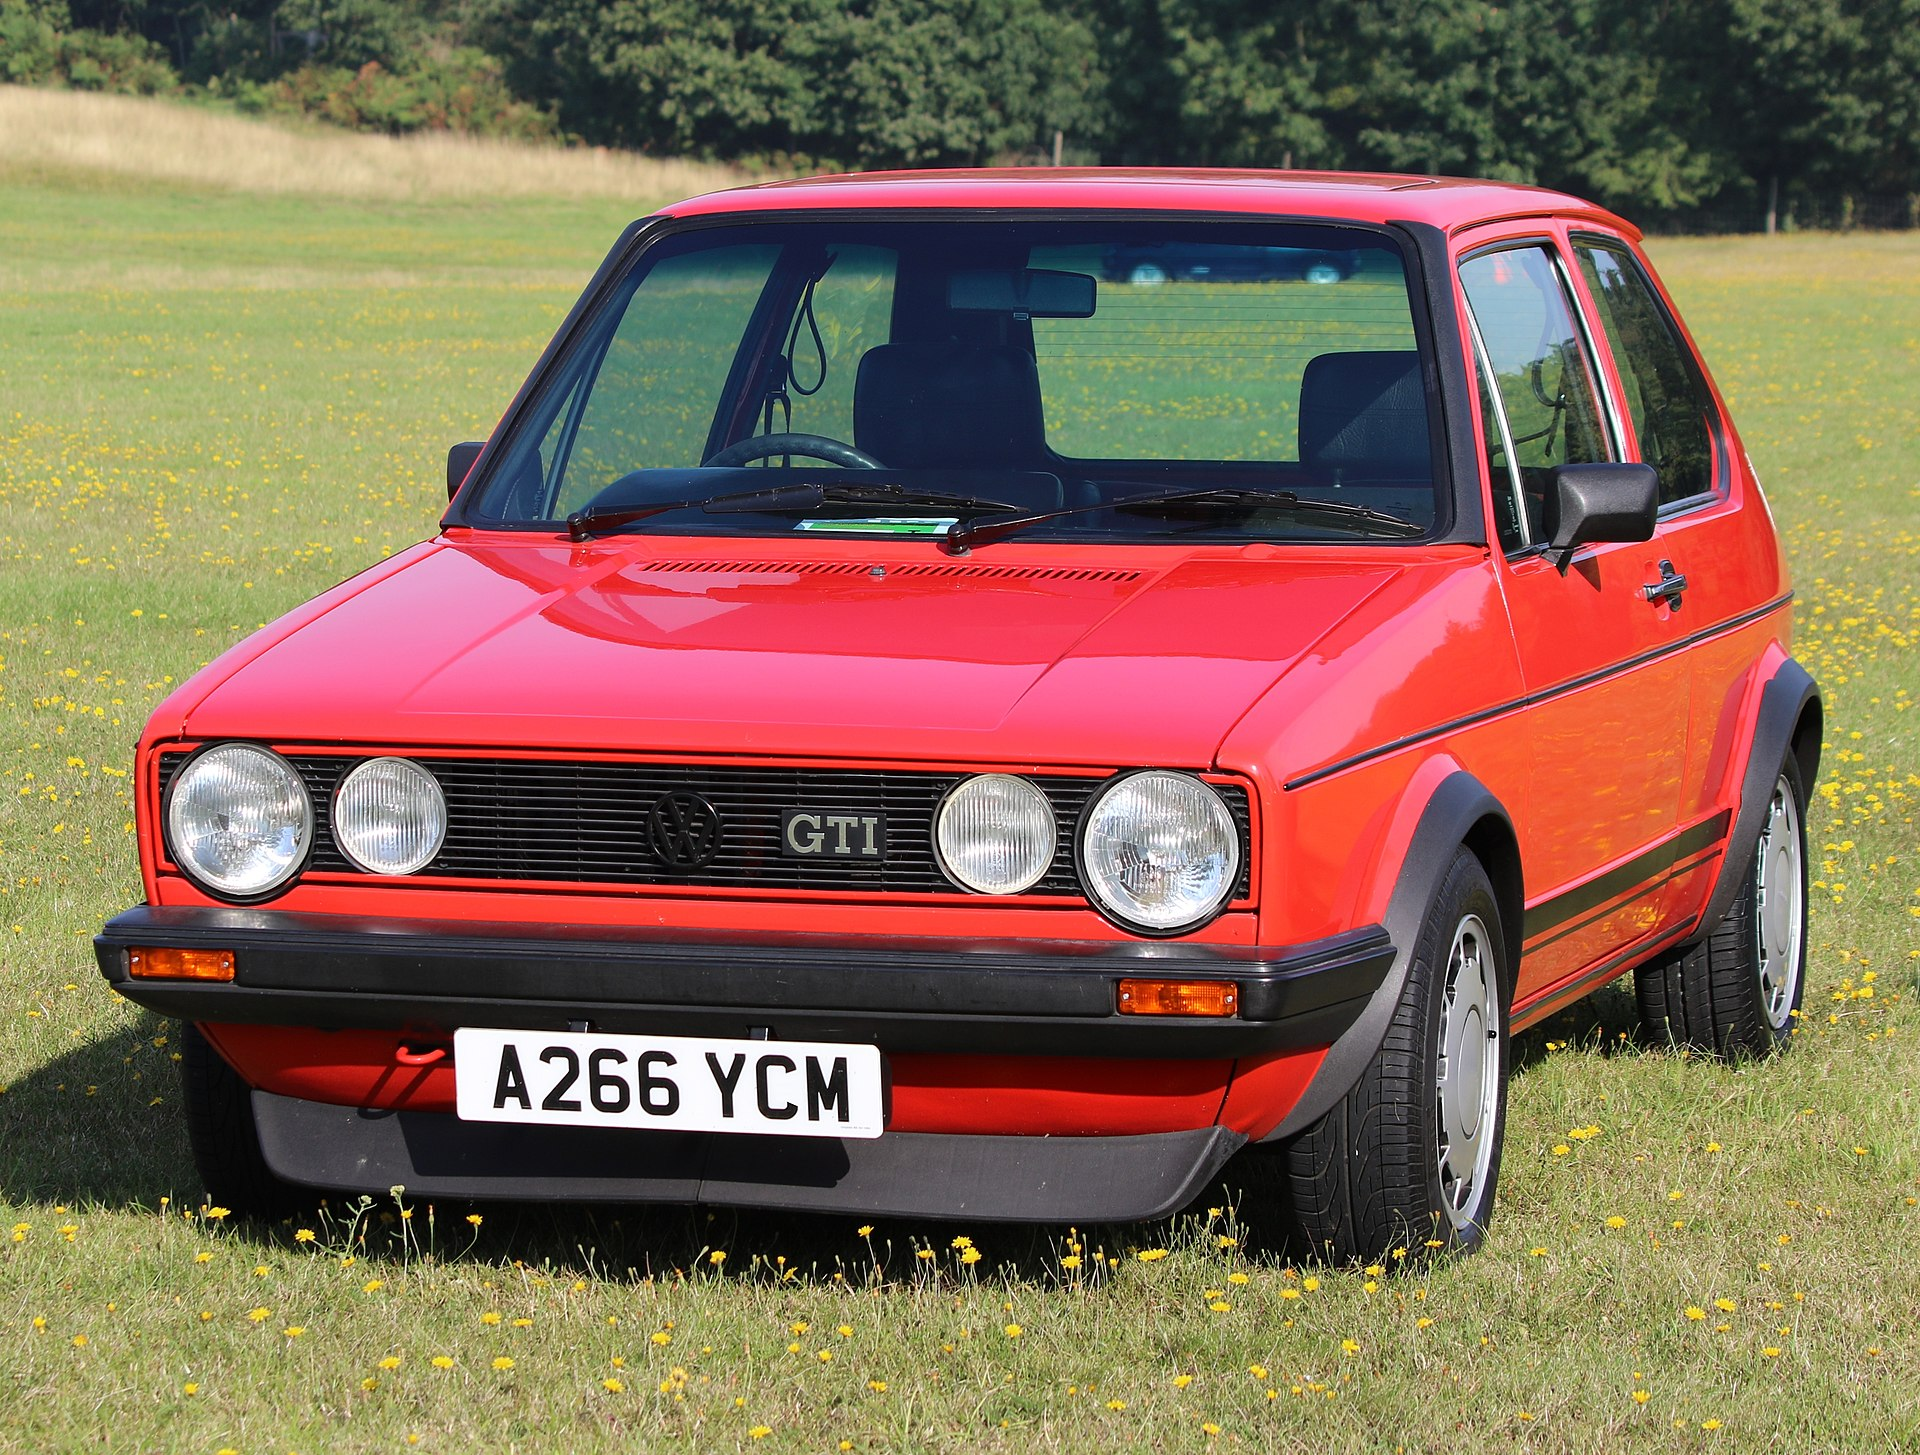 Hot Hatches of the 80s | Our Top 5